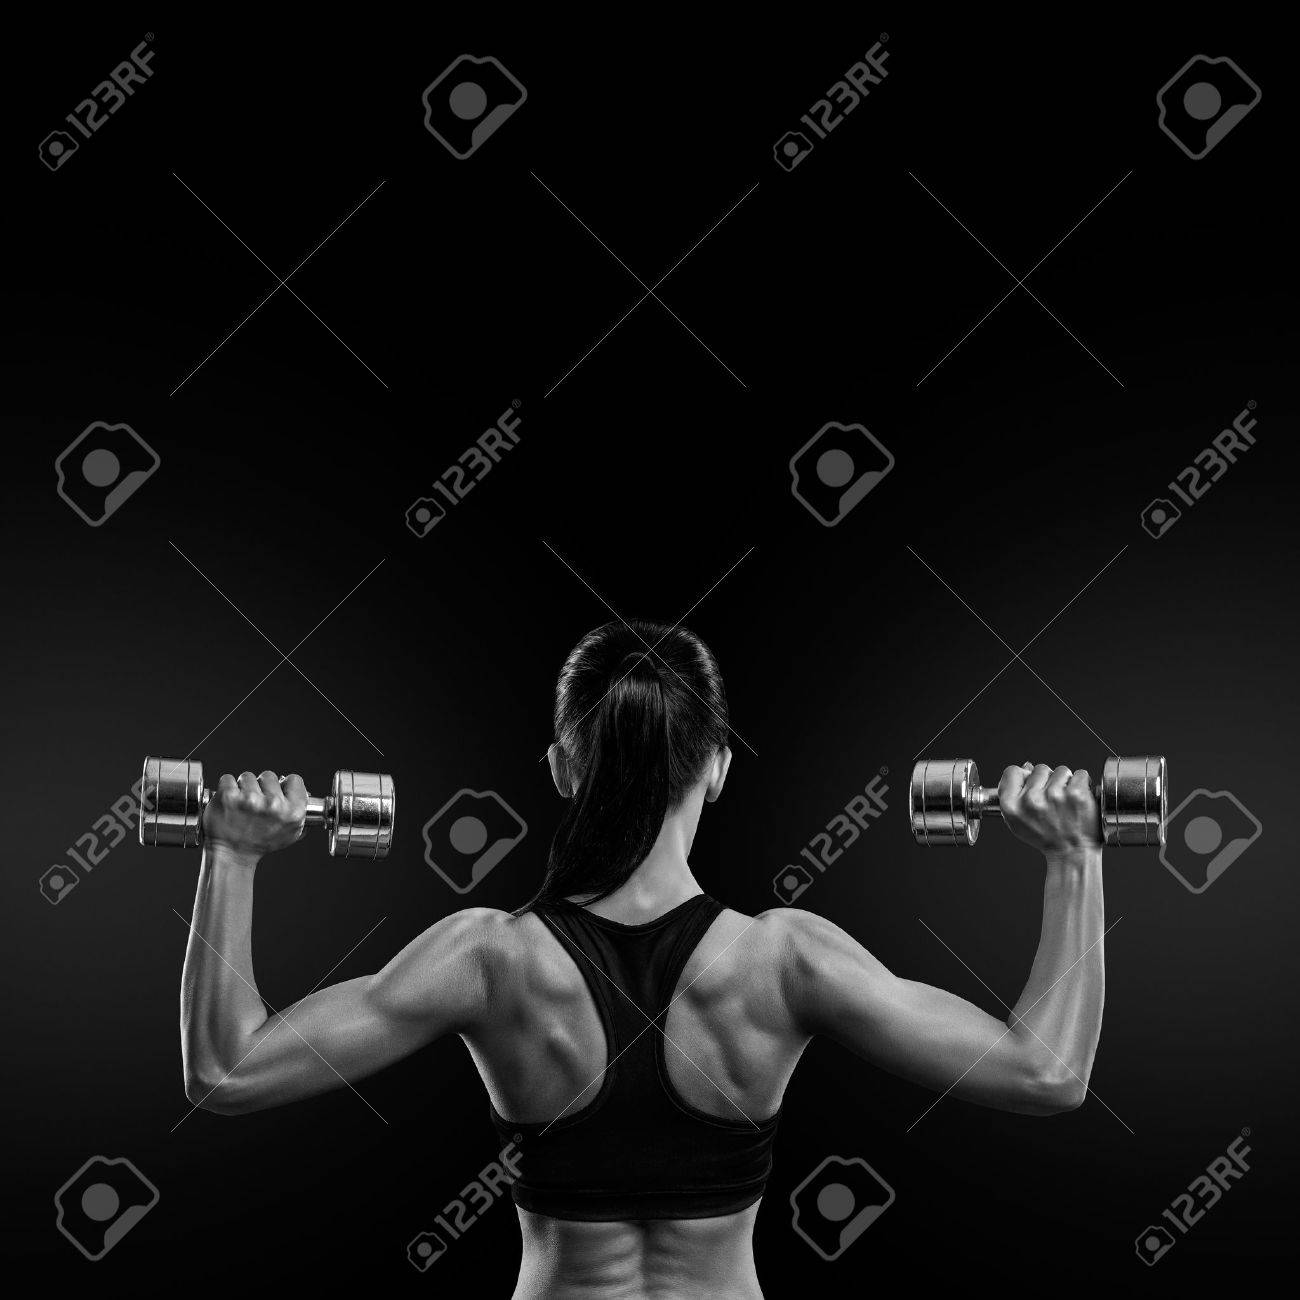 Fitness sporty woman in training pumping up muscles of the back and hands with dumbbells. Black and white concept image Standard-Bild - 41422117